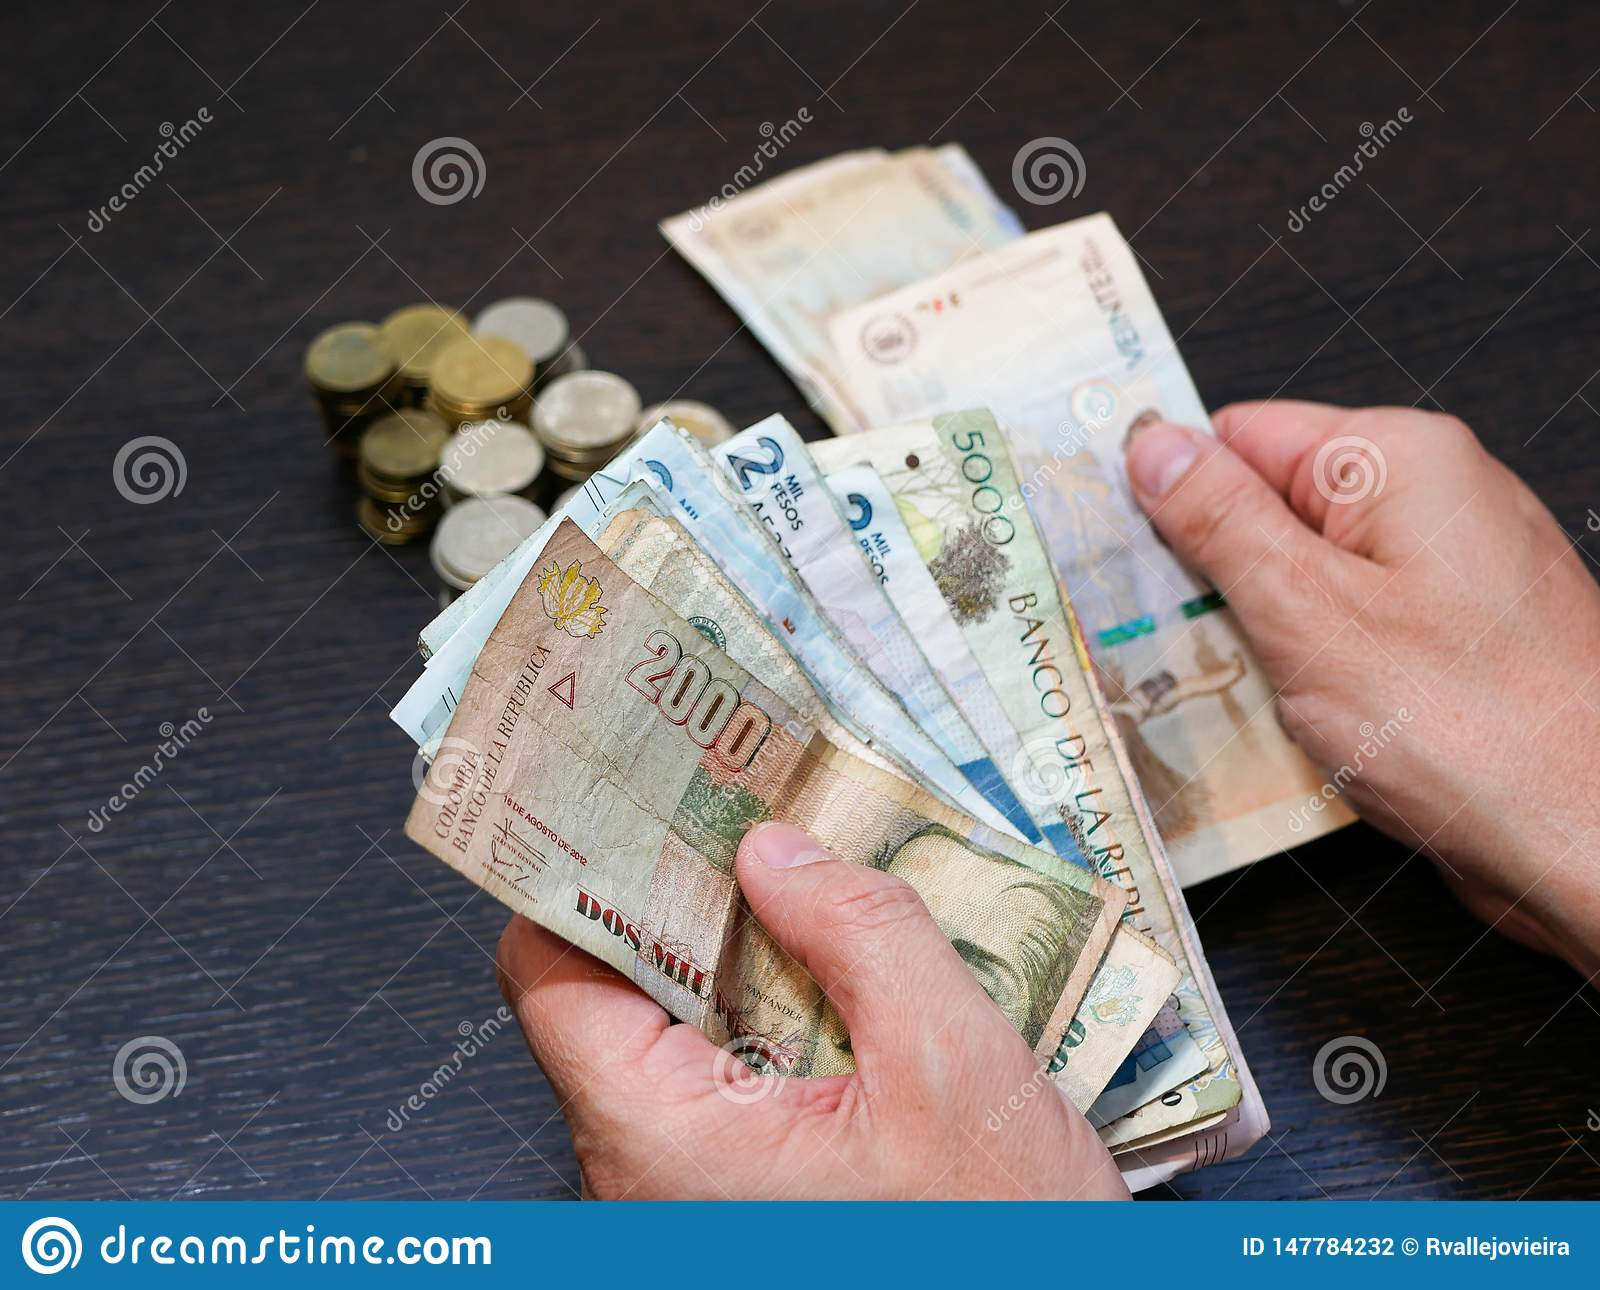 Hands Of A Man Counting Money Colombian Pesos Currency